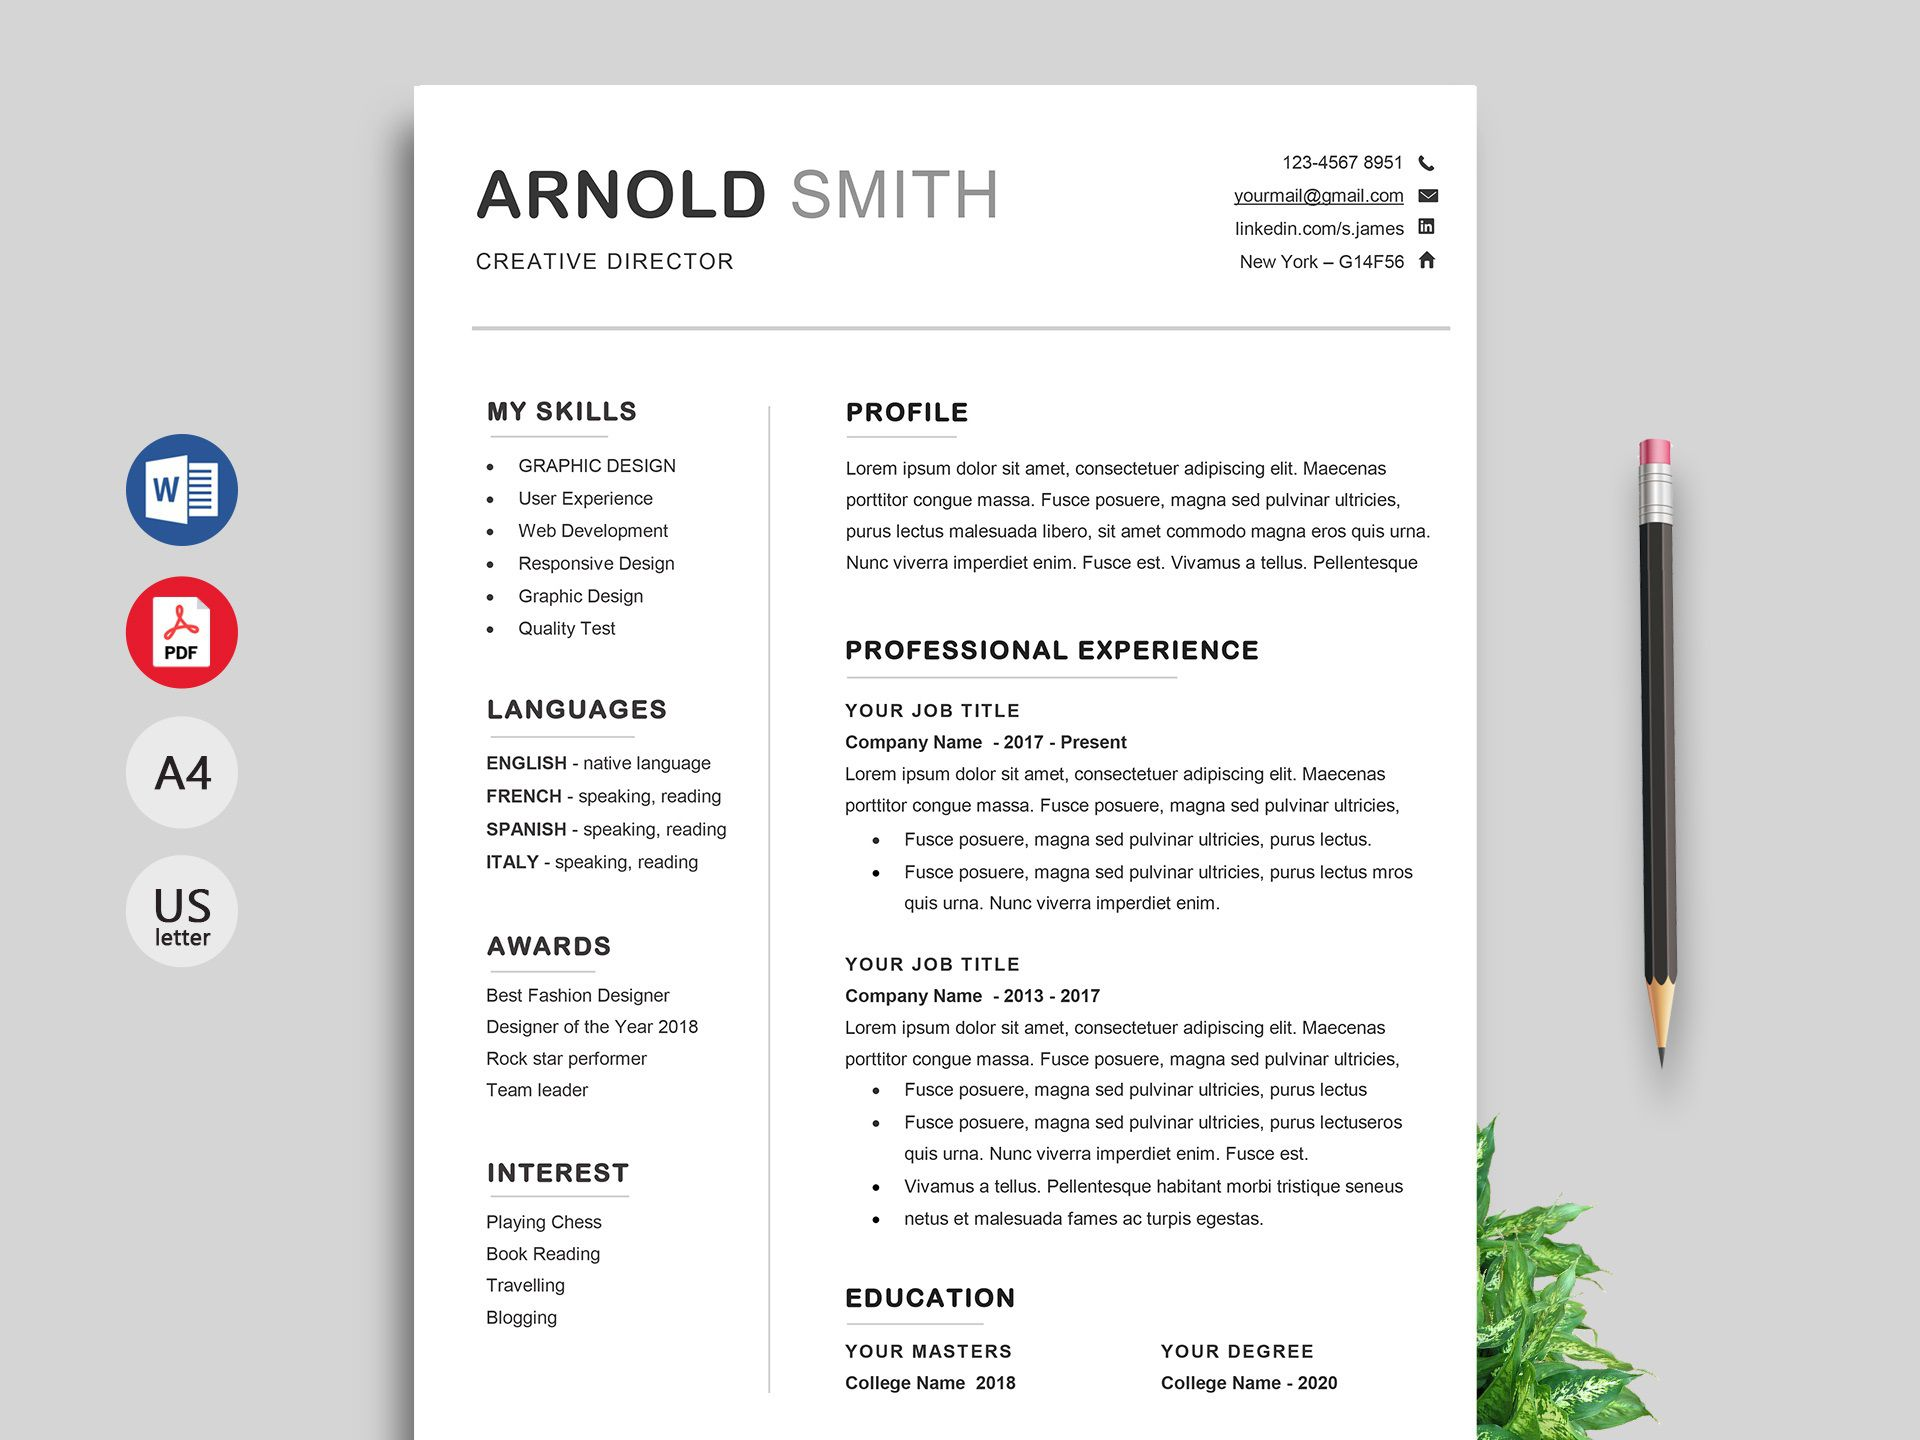 001 Imposing Free Resume Template To Download Design  Professional Format In M Word 2007 For Civil EngineerFull